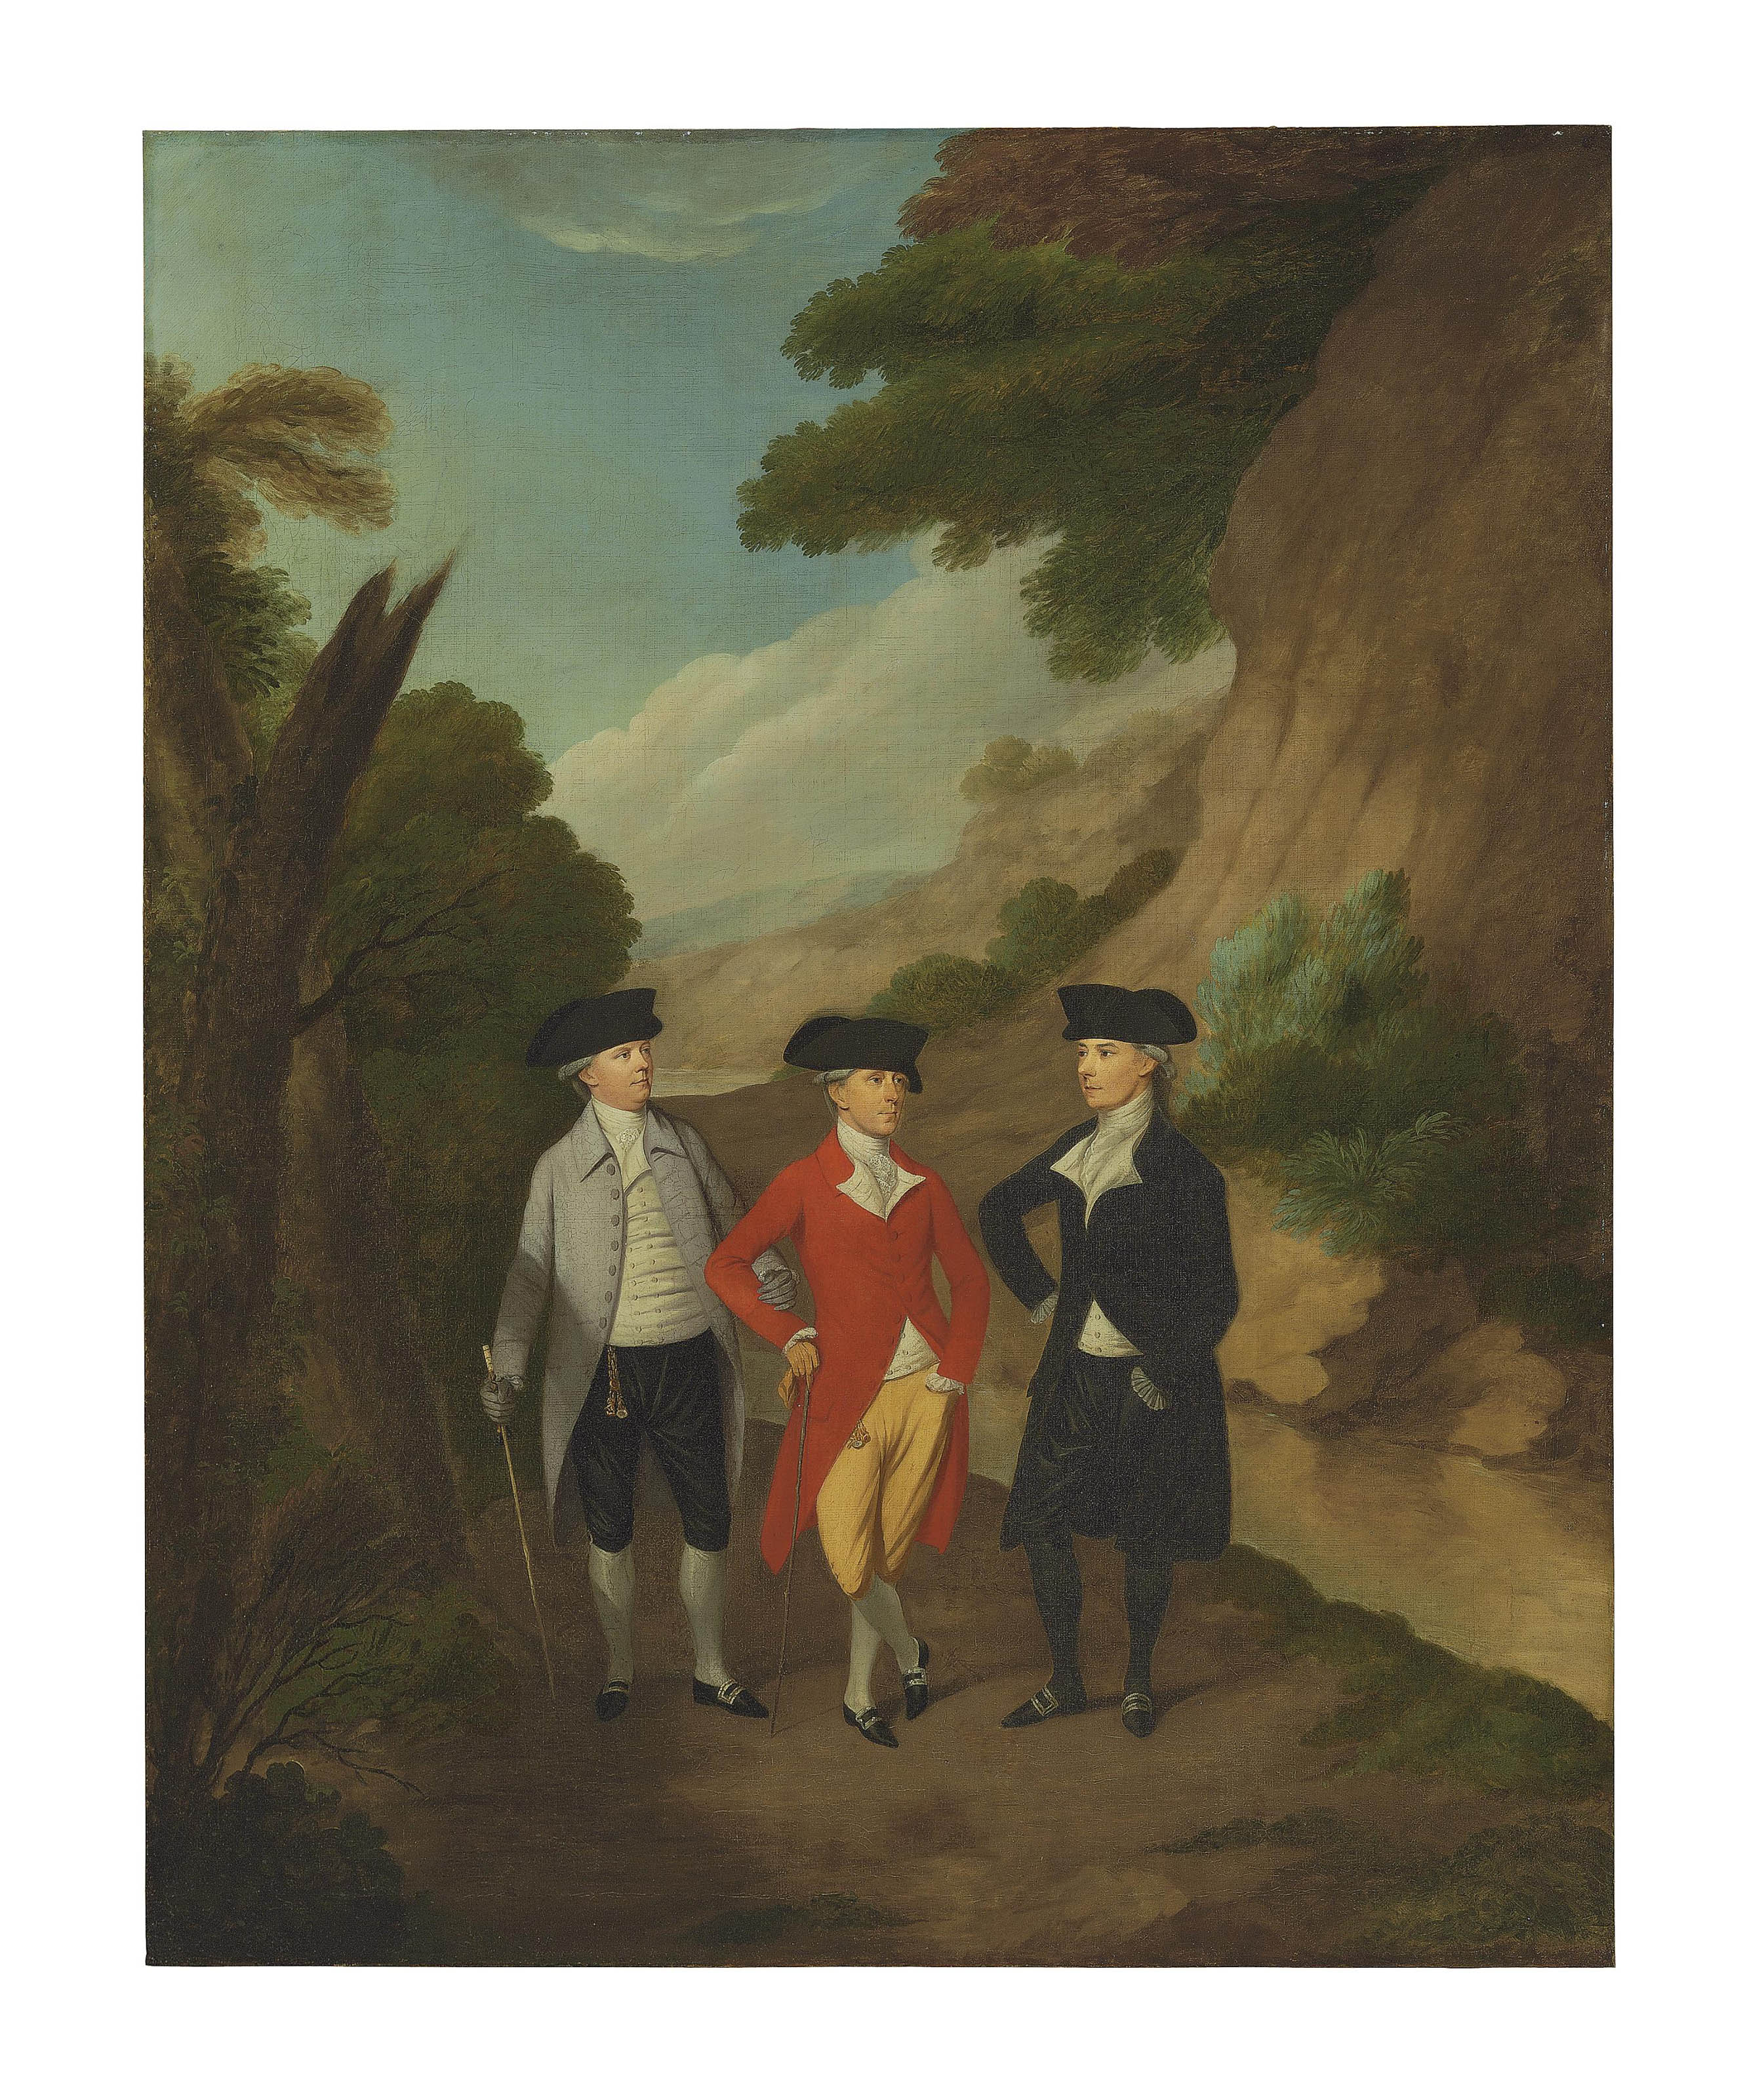 A group portrait traditionally identified as John Johnson, Mr. Croft and William Bentham